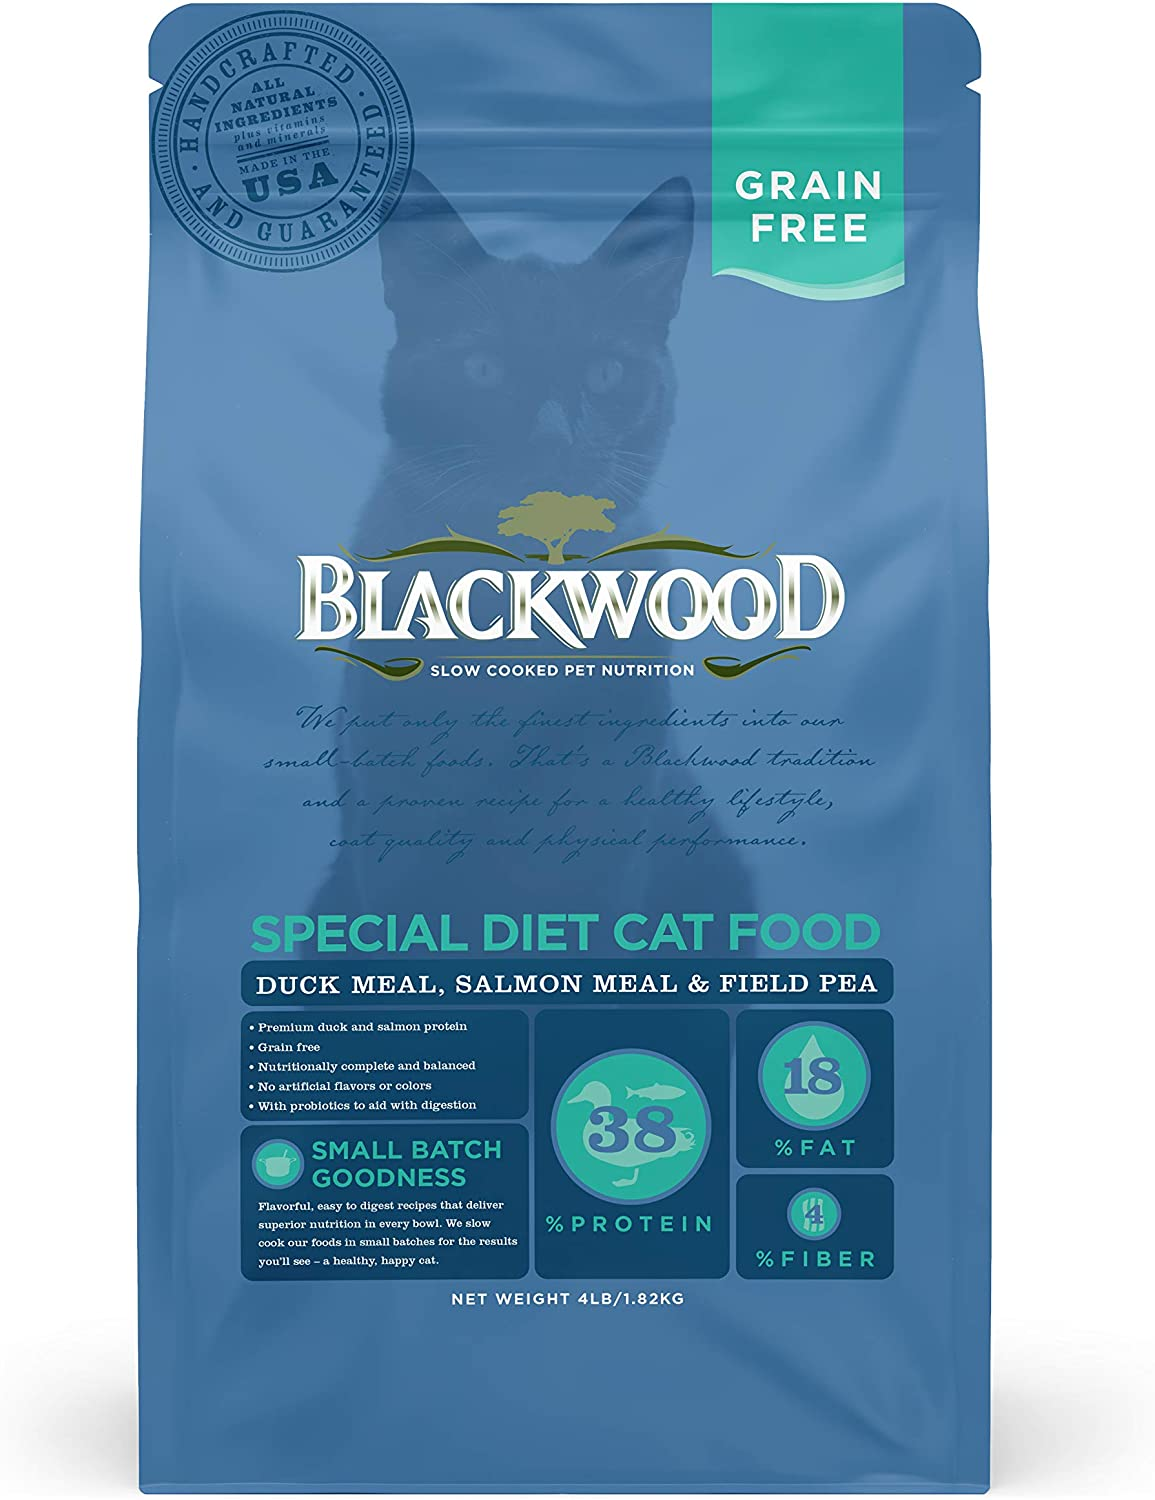 Blackwood Pet Grain Free Cat Food Made in USA [Special Diet Dry Cat Food To Solve Food Sensitivities Naturally], Ideal For All Life Stages